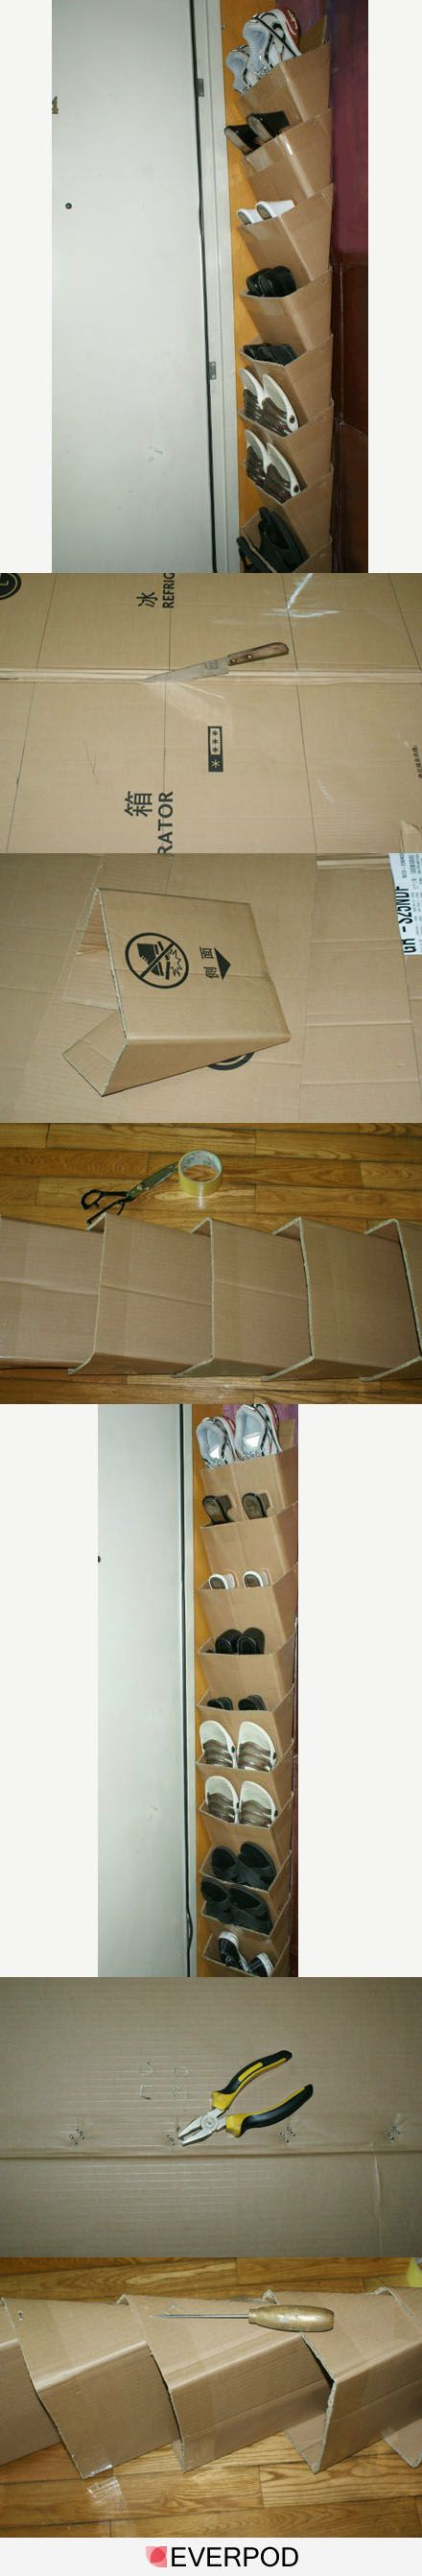 shoes organizer5